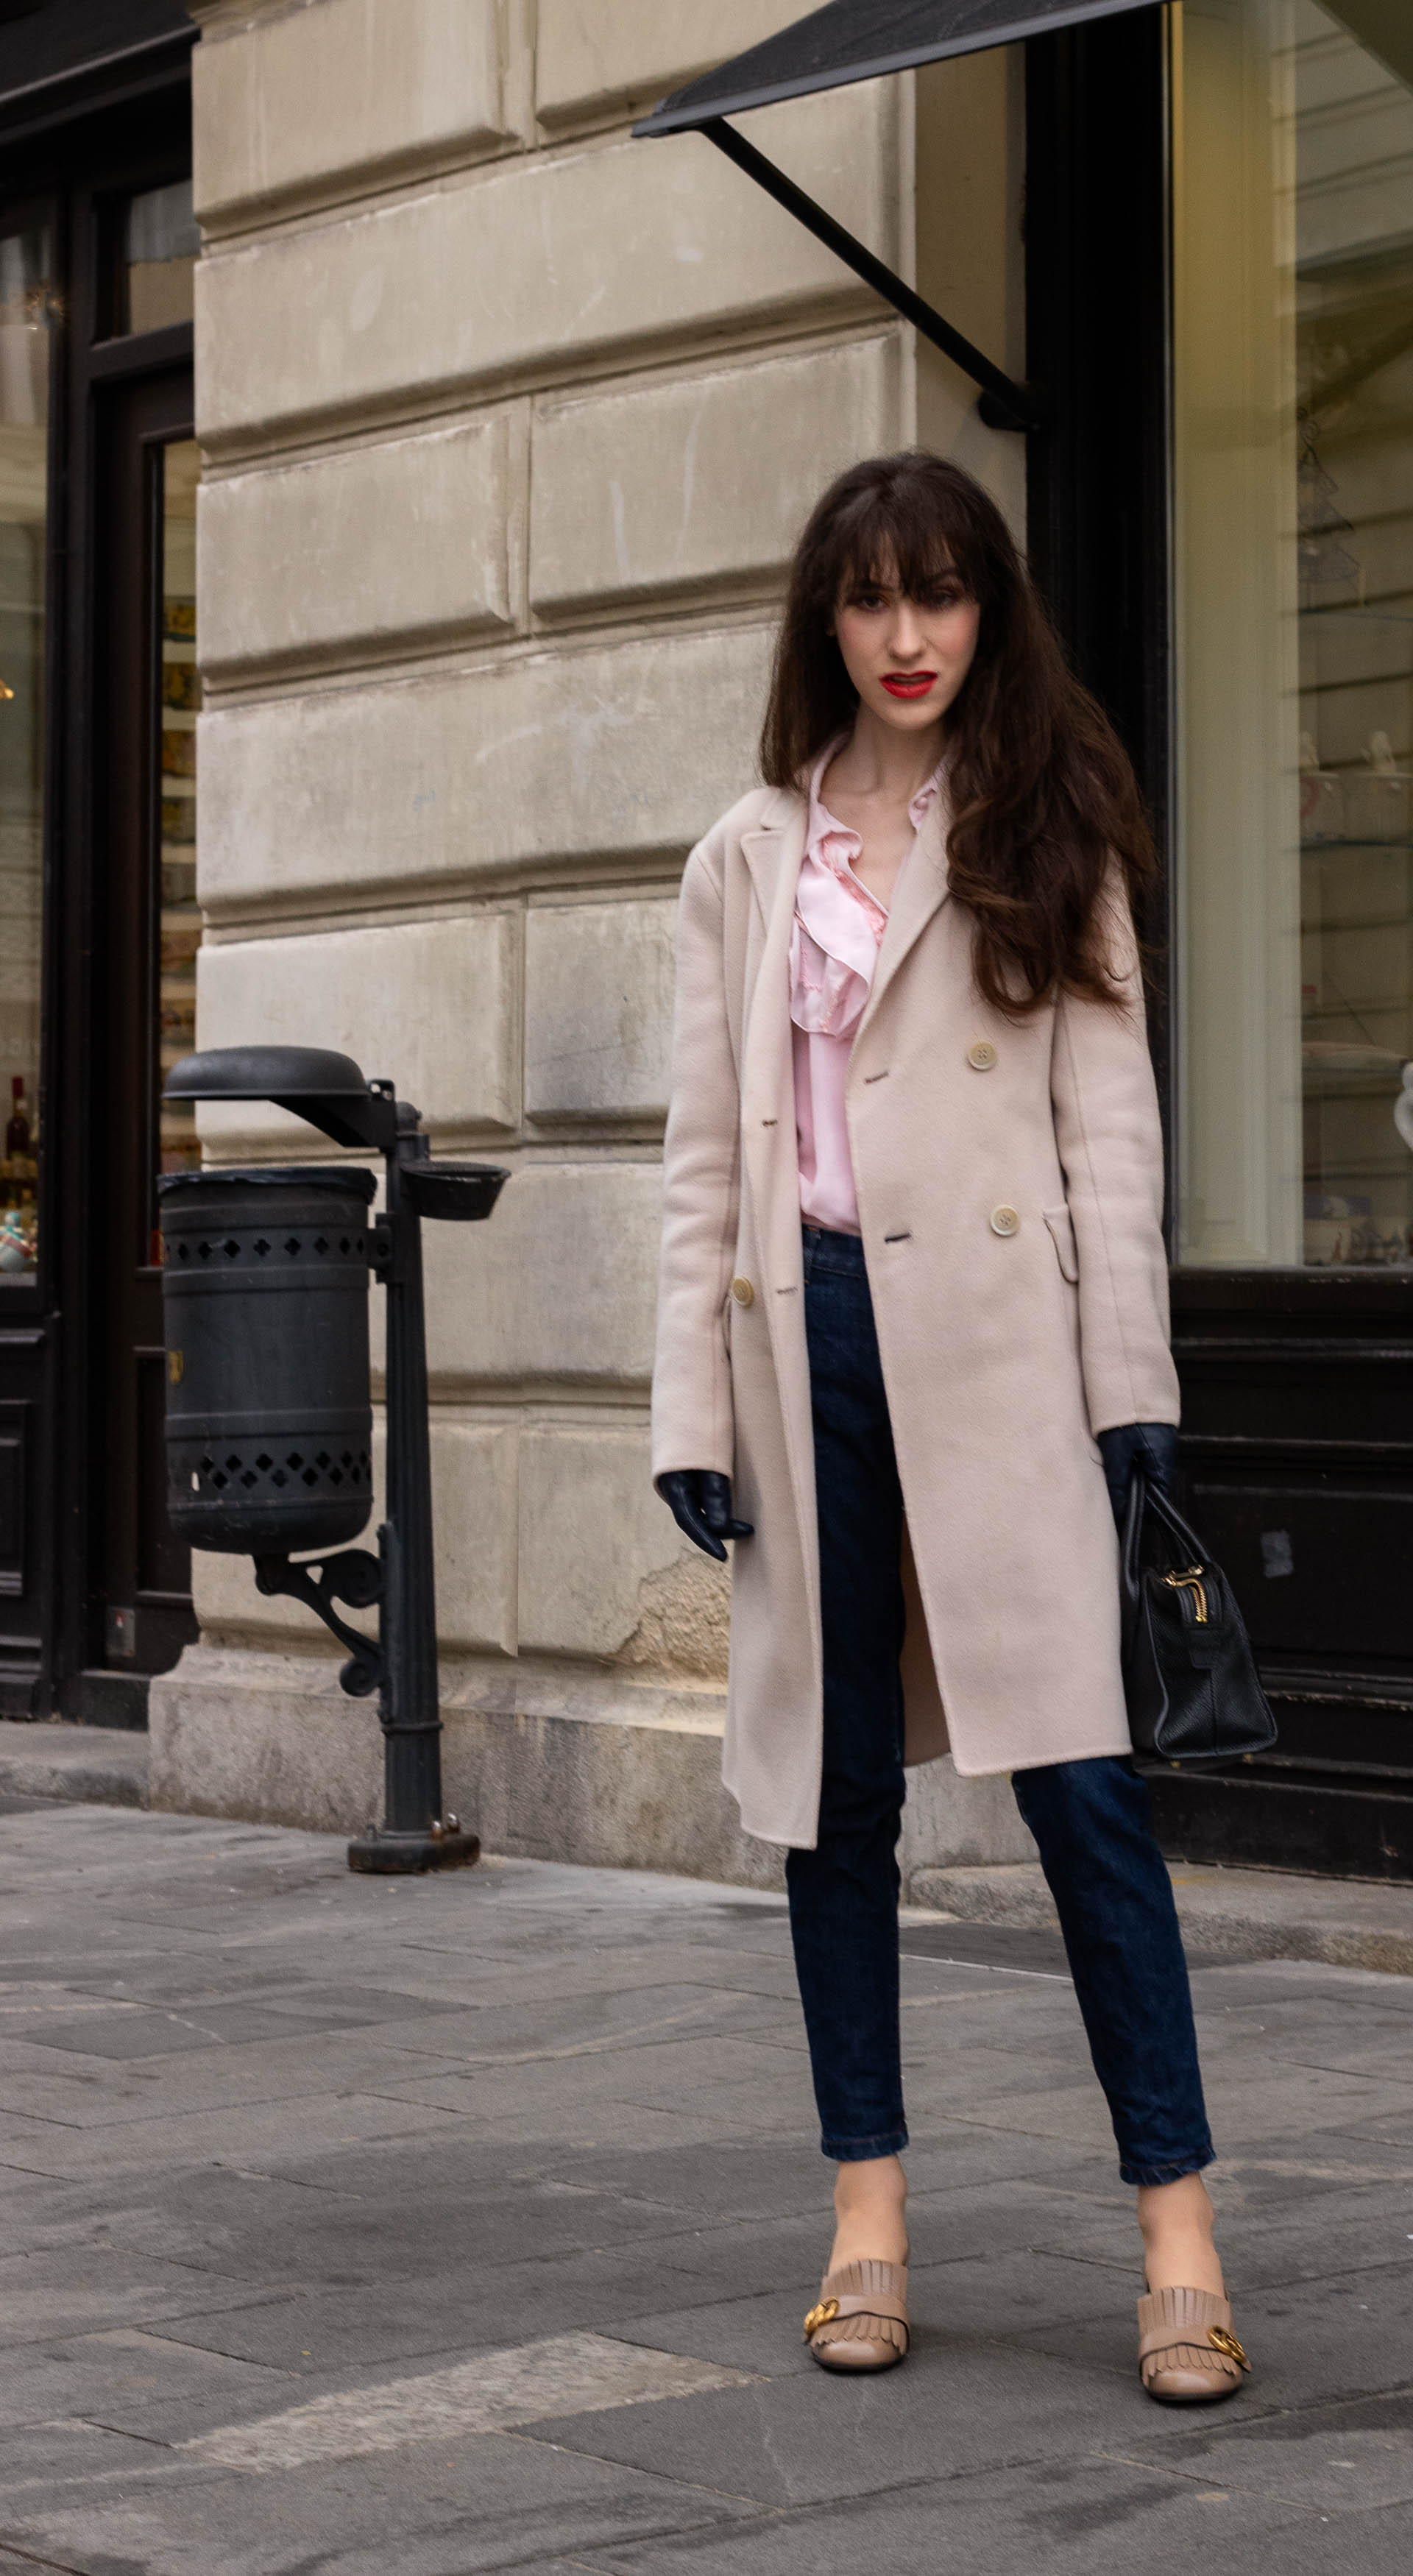 Fashion blogger Veronika Lipar of Brunette from Wall Street wearing pink Gucci heeled loafer A.P.C. navy blue jeans Weekend Max Mara double breasted coat Red Valentino pink blouse black top handle bag blue leather gloves on the street in-between seasons